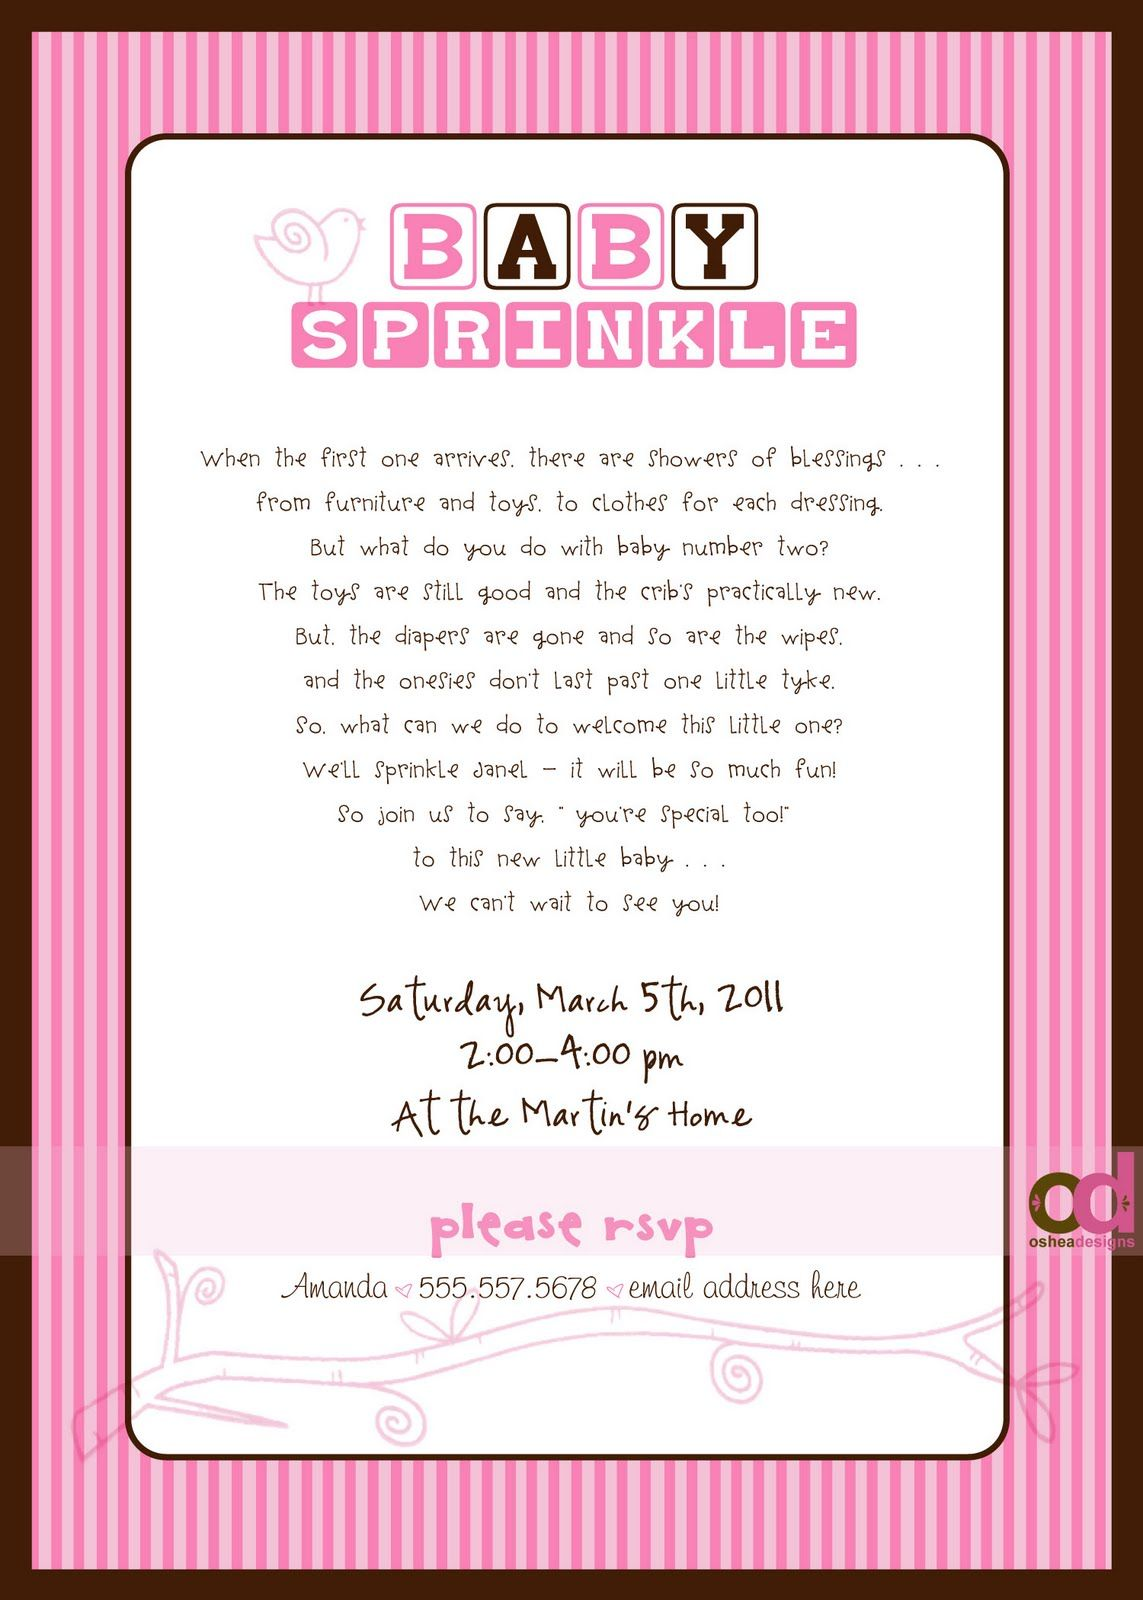 Sprinkle invitations wording wish i would have found this a few sprinkle invitations wording wish i would have found this a few weeks ago sprinkle partybaby sprinkle showerbaby filmwisefo Image collections